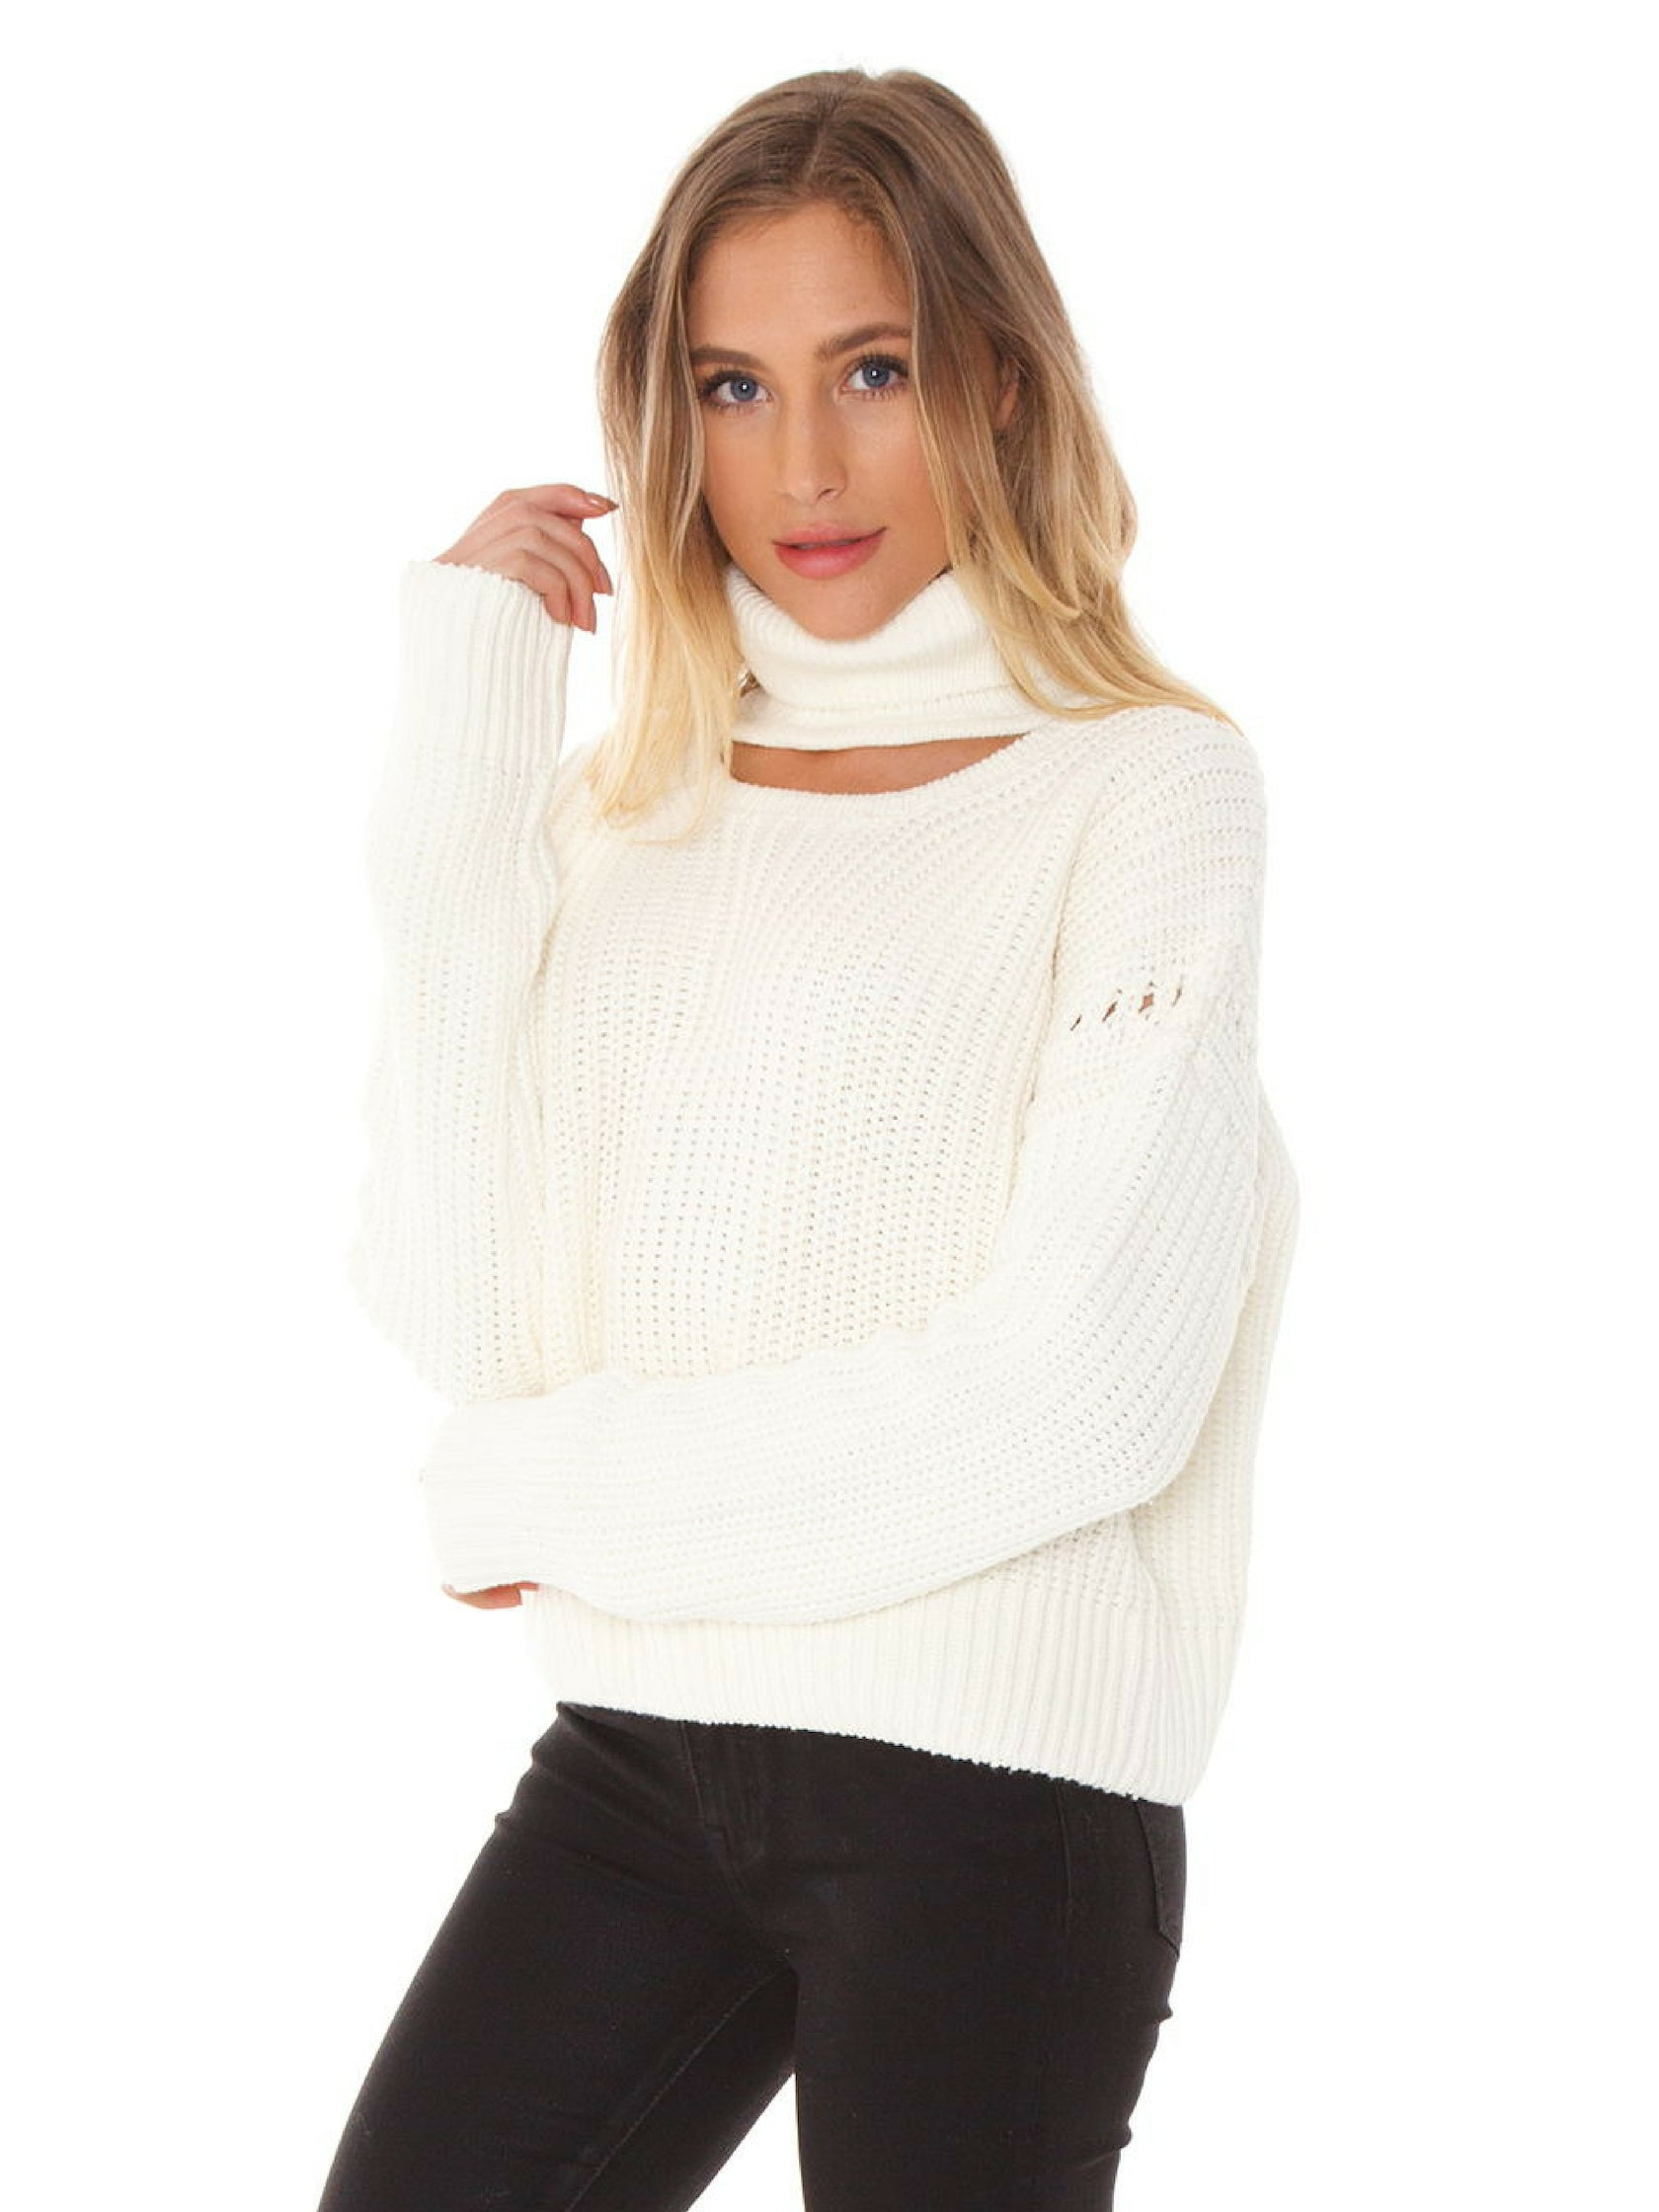 Women wearing a sweater rental from Bishop + Young called Fireside Cropped Sweater